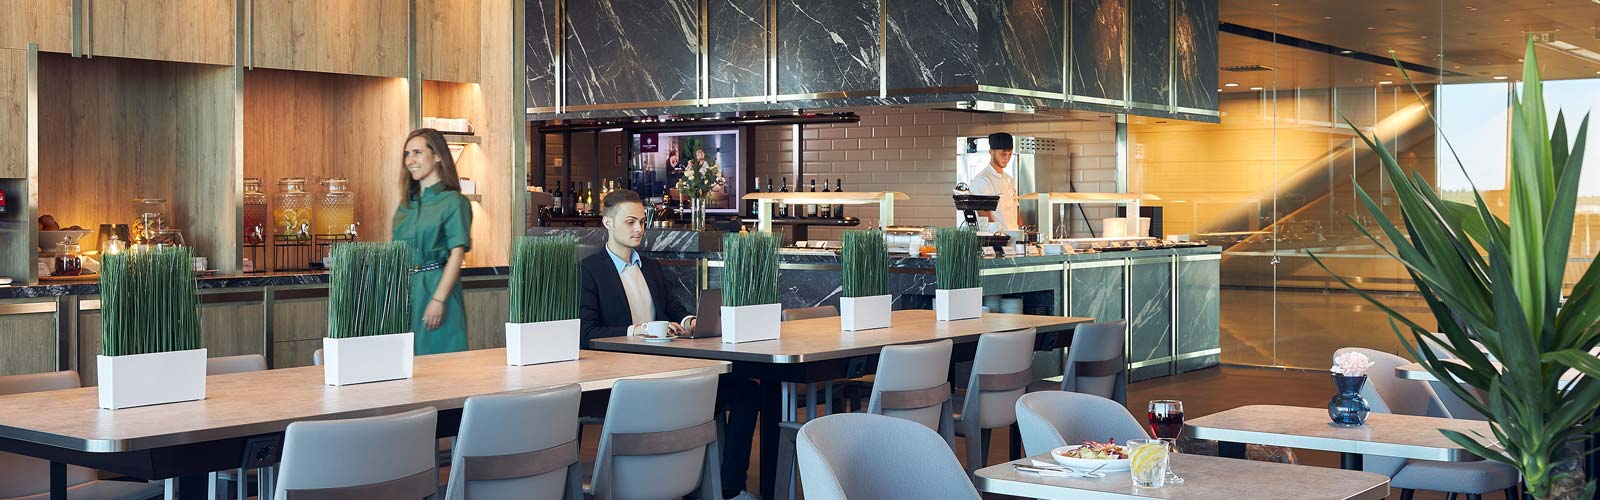 The new Plaza Premium Lounge Helsinki (Image courtesy of Plaza Premium)